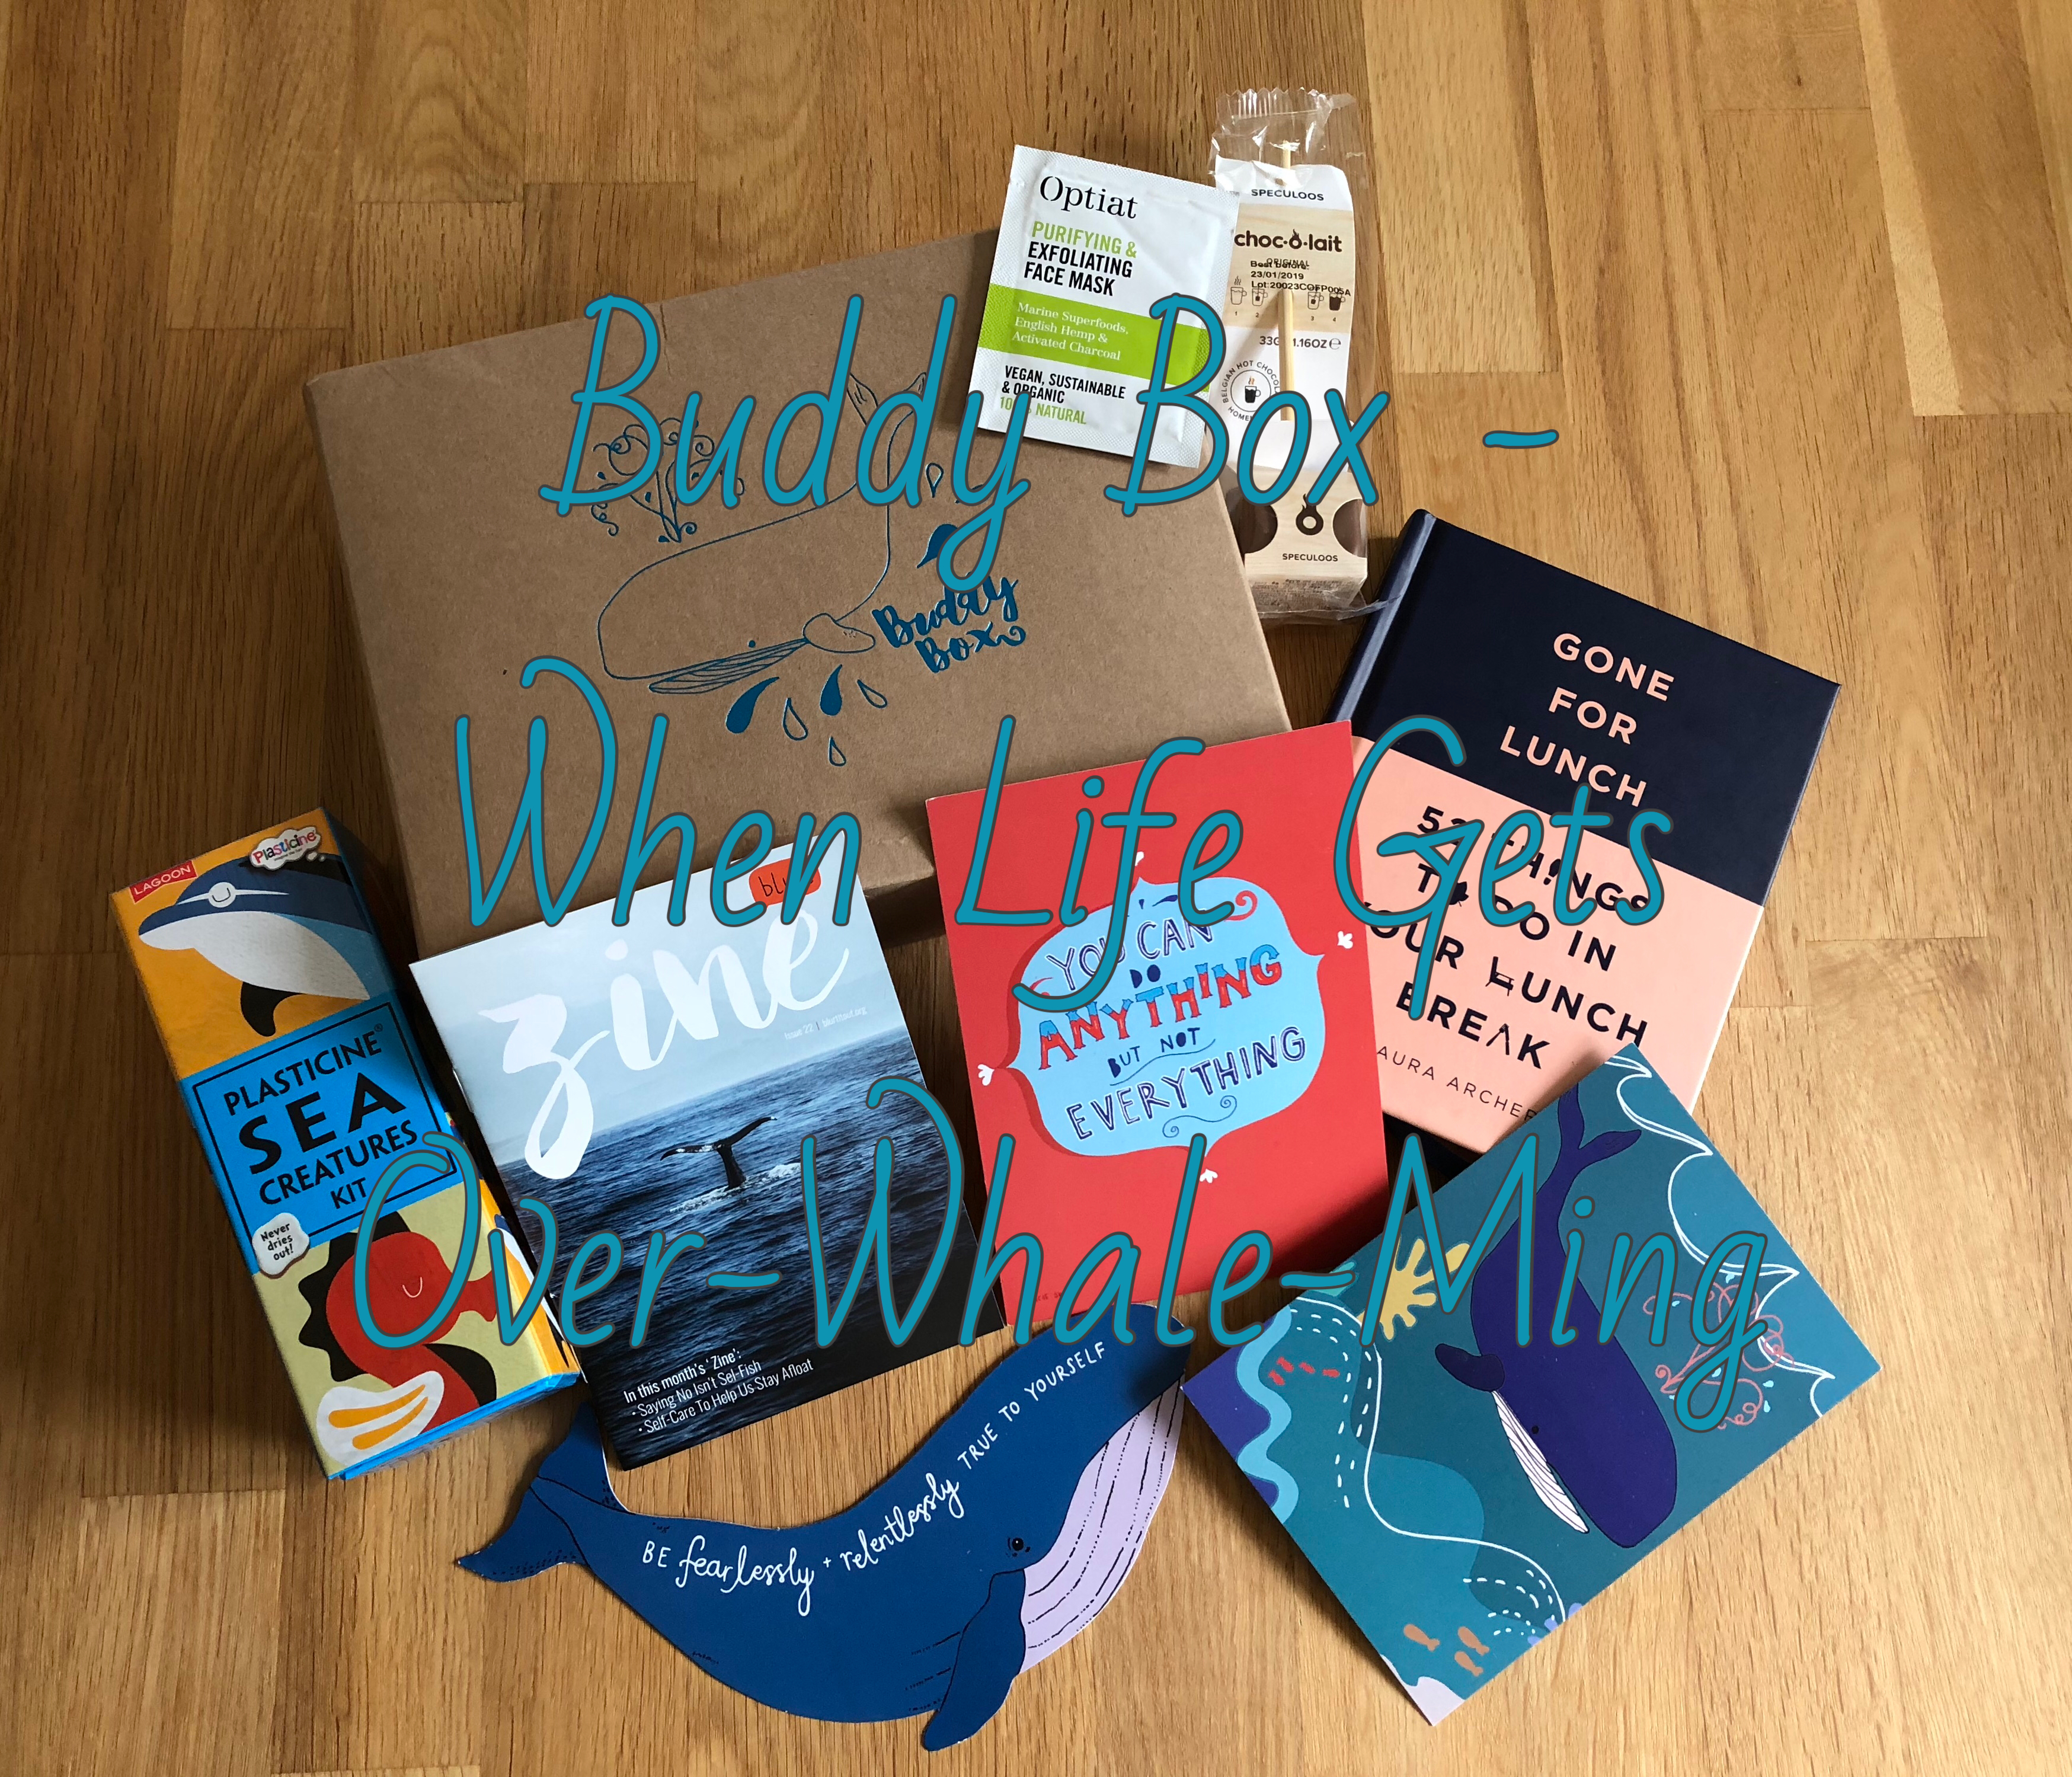 When Life Gets Over-Whale-Ming – Buddy Box Review | Self Care graphic